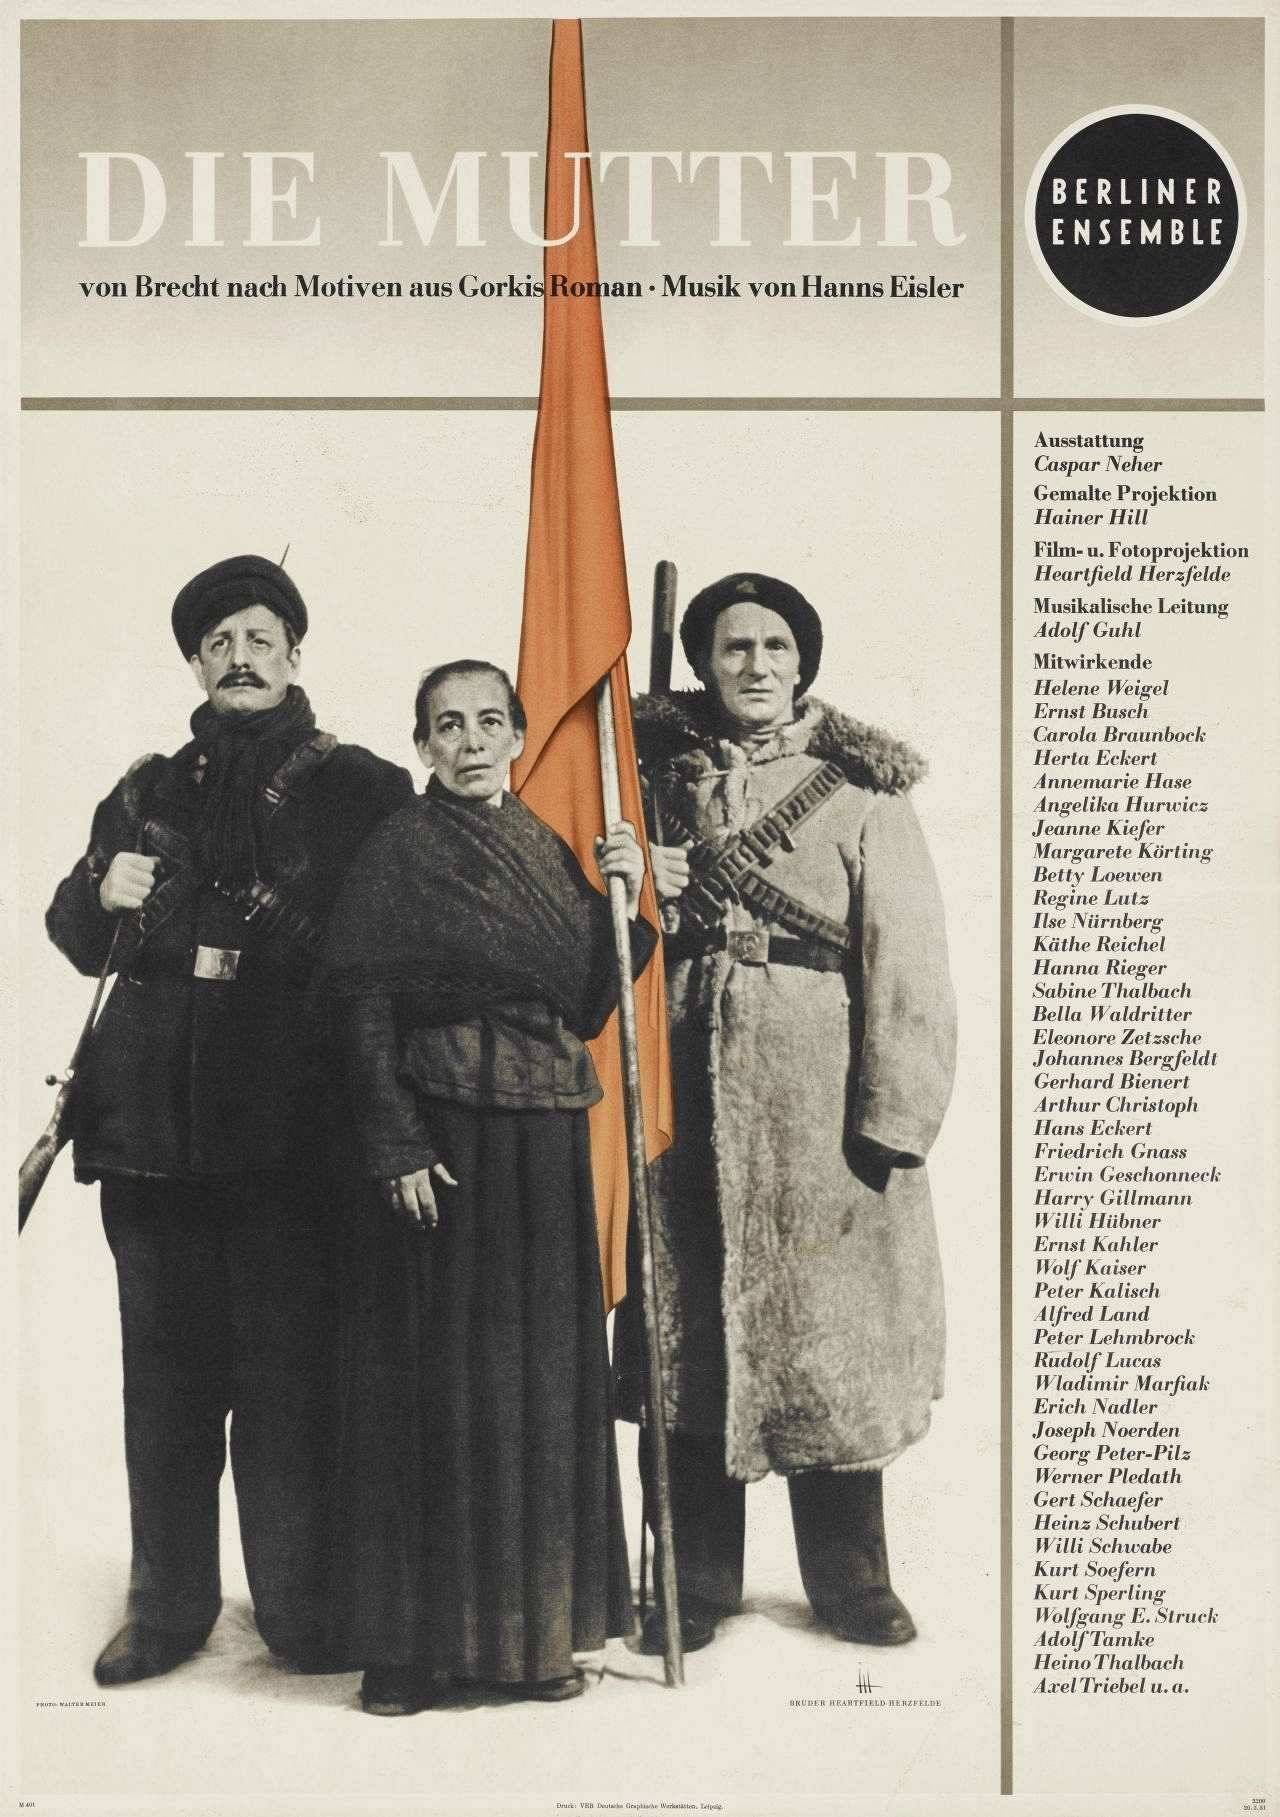 Die Mutter 1951 John Heartfield German 1891 1968 Poster Based On Gorky S 1906 Novel Of The Same Name Brecht S Play Famous Communists Literature Novels